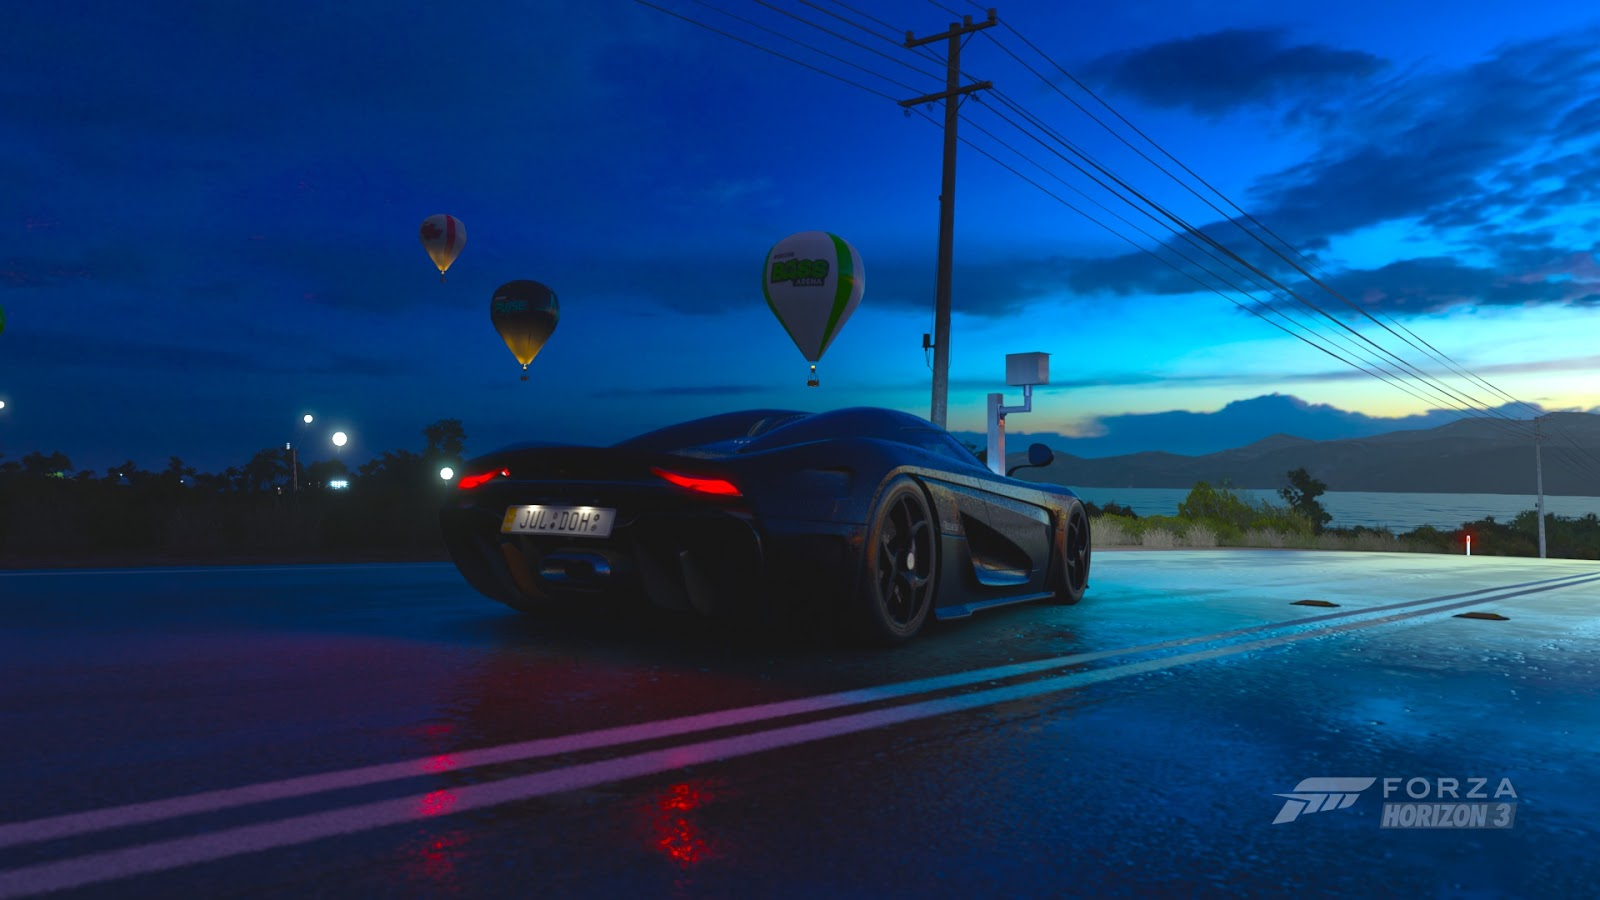 test forza horizon 3 geekmpt blog jeux video cin ma s ries tv loisirs et bons plans. Black Bedroom Furniture Sets. Home Design Ideas